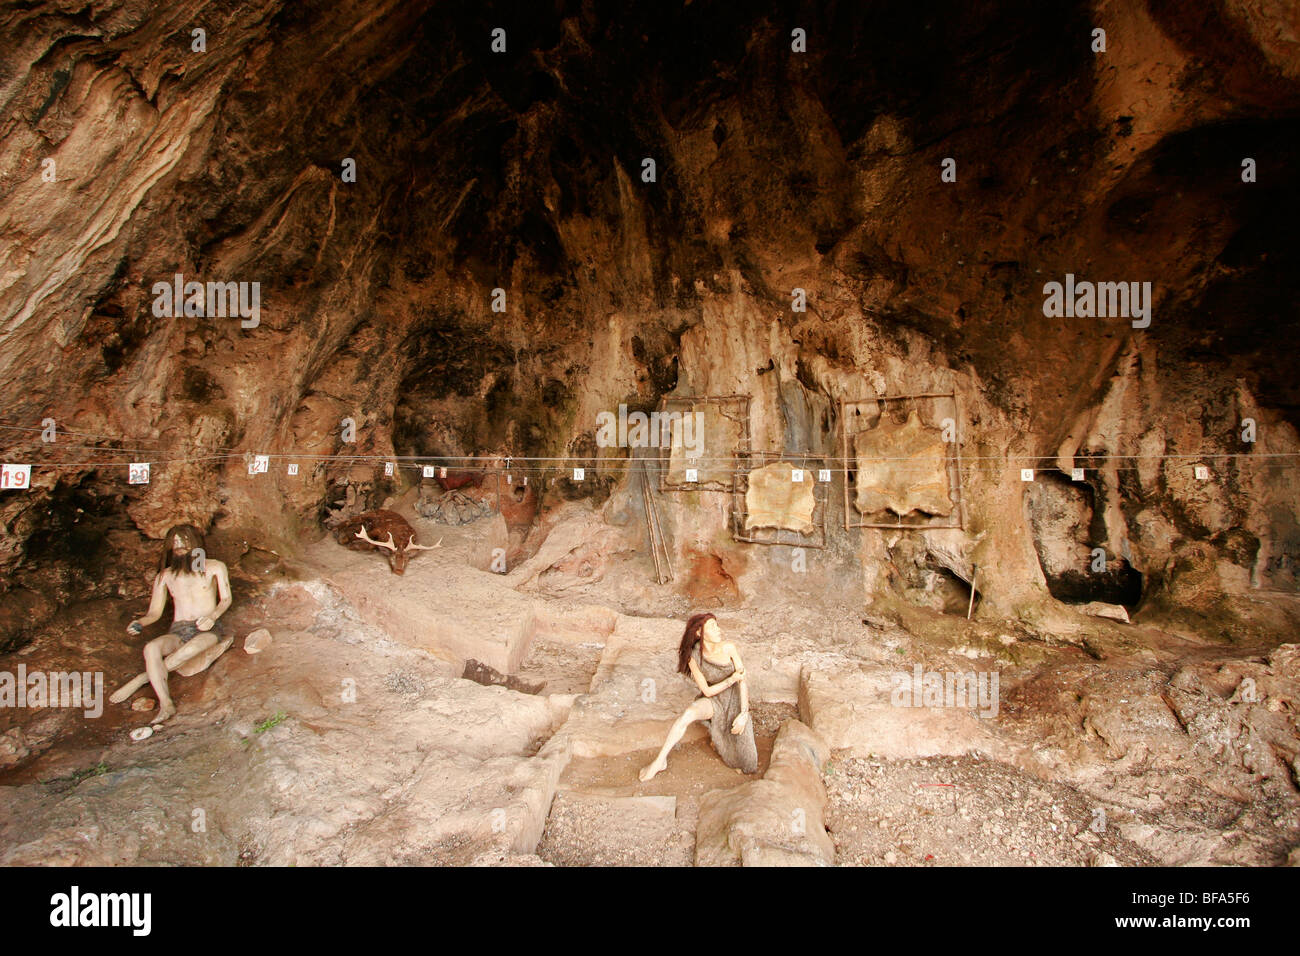 Israel, Mount Carmel. Camel Cave, which has an exhibition of tools used during the Mousterian culture period - Stock Image